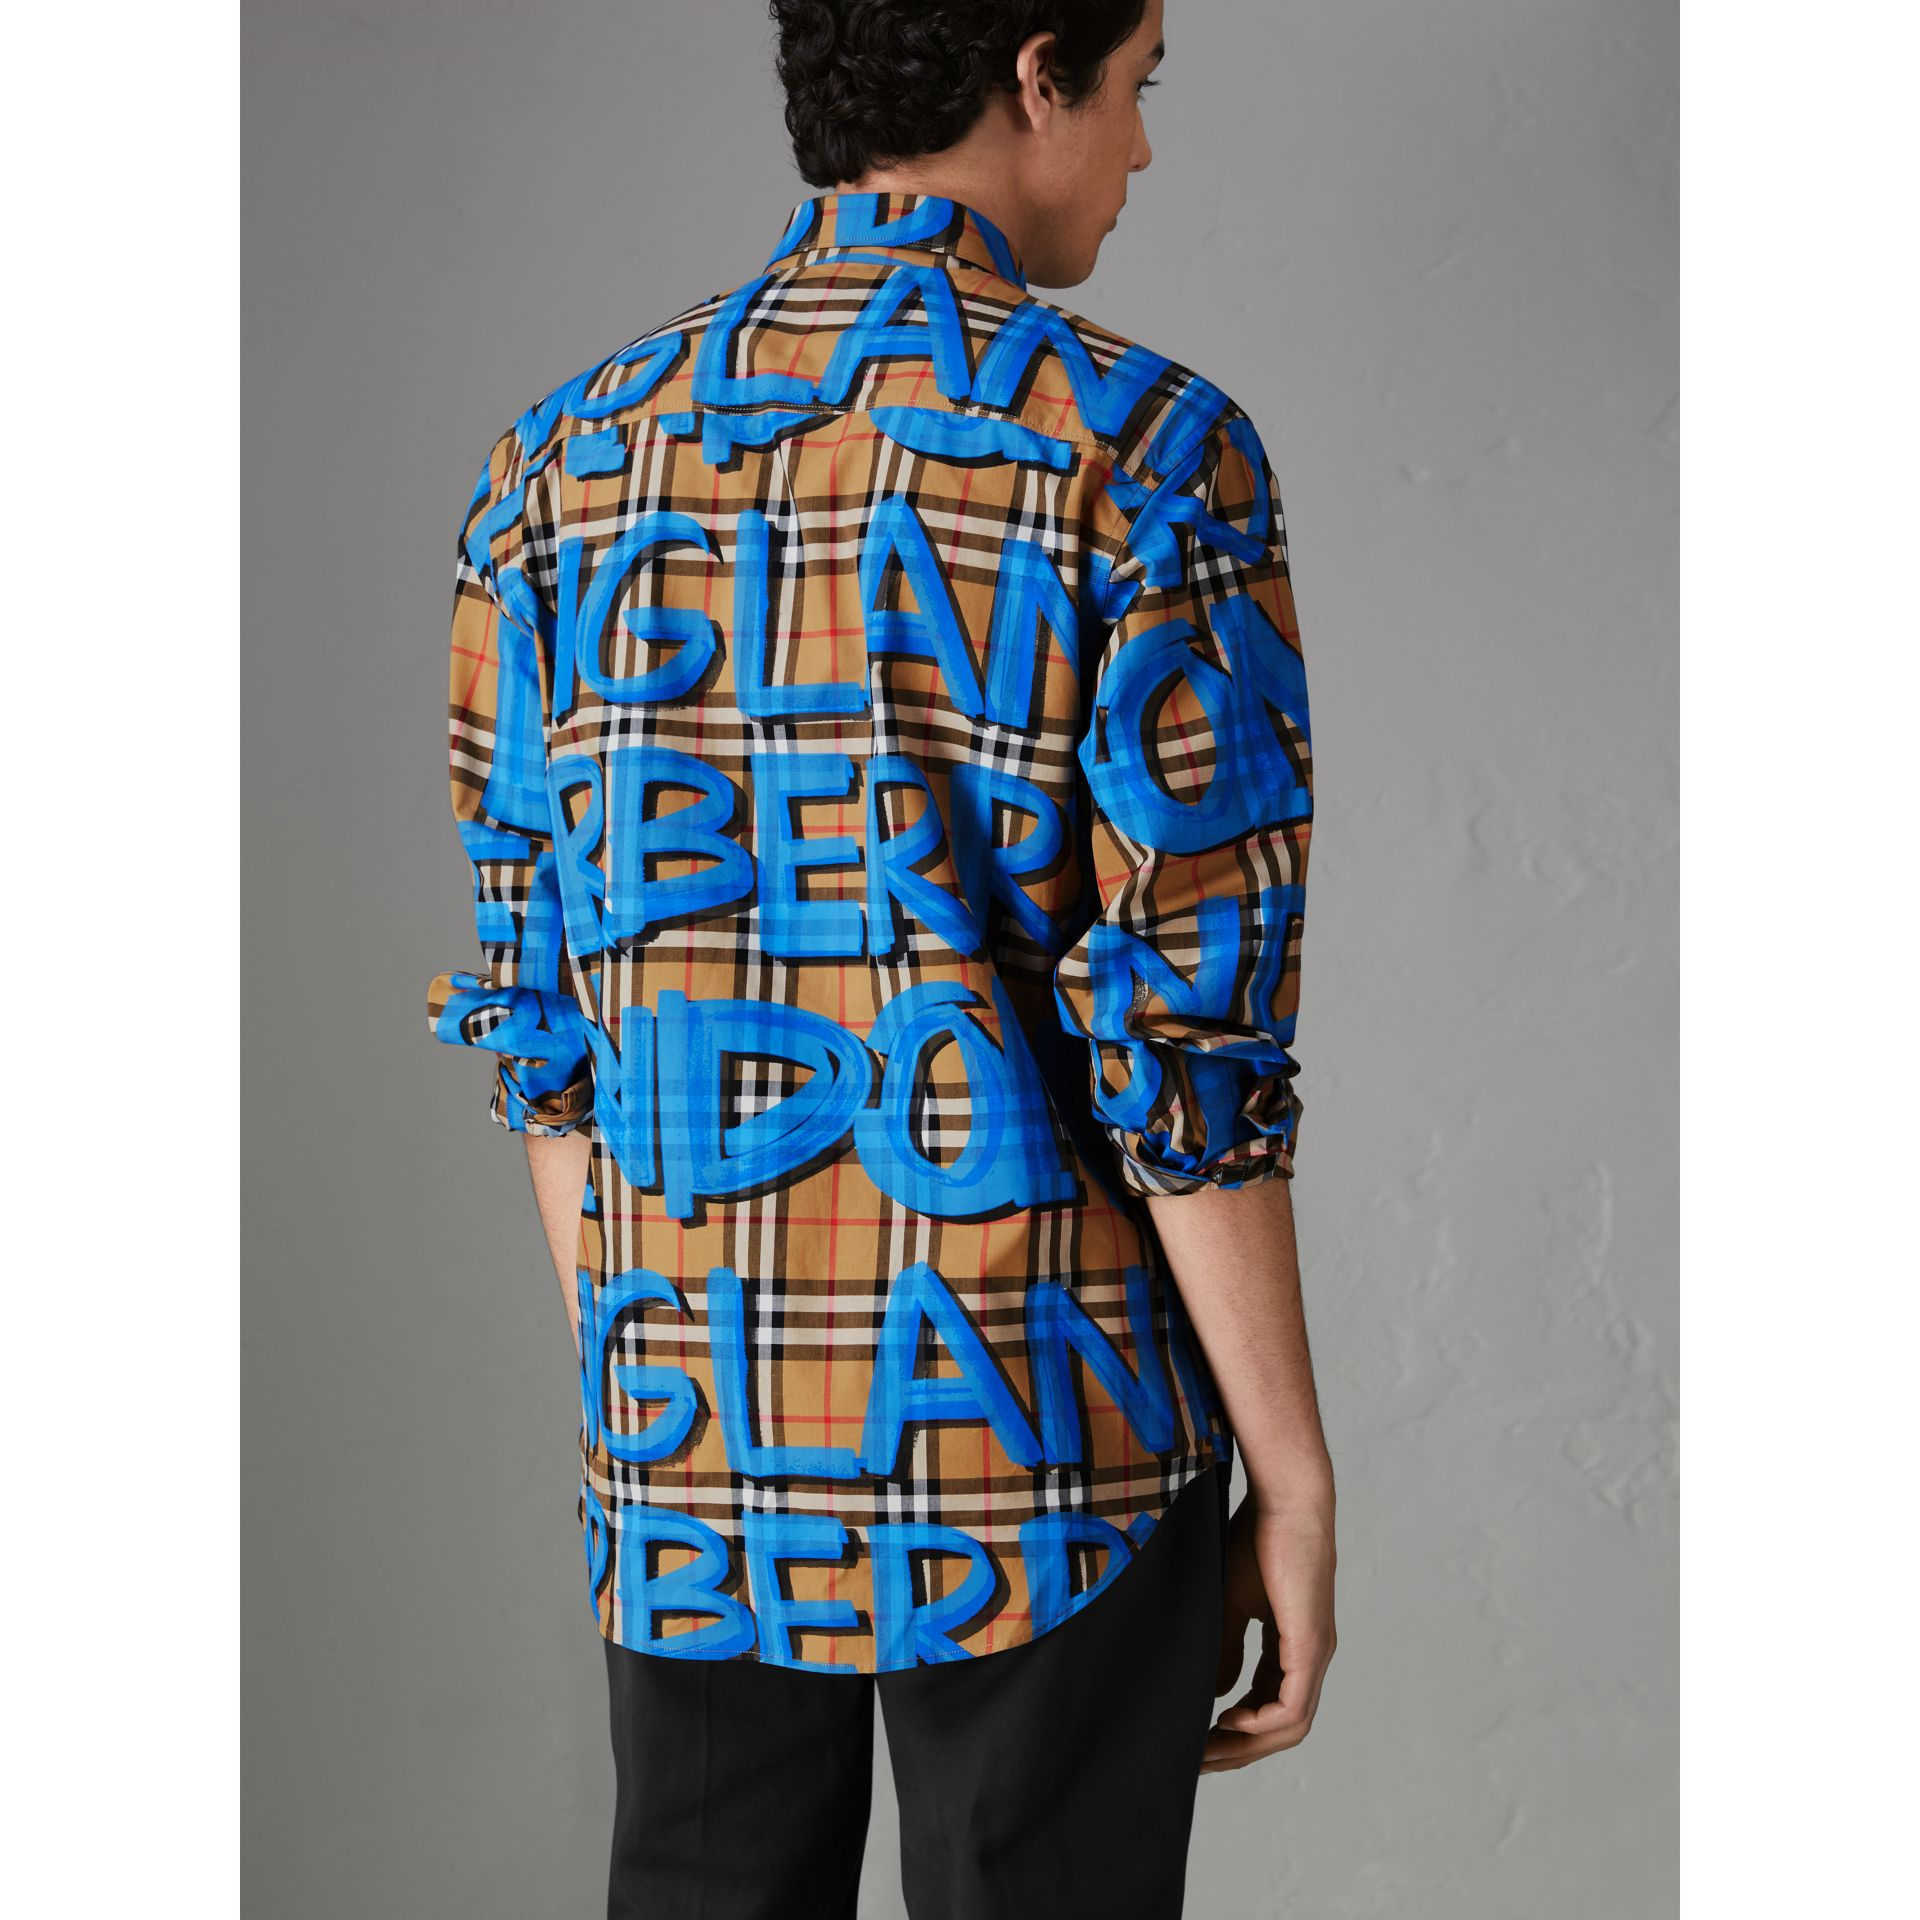 Graffiti Print Vintage Check Shirt in Bright Blue - Men | Burberry - gallery image 2